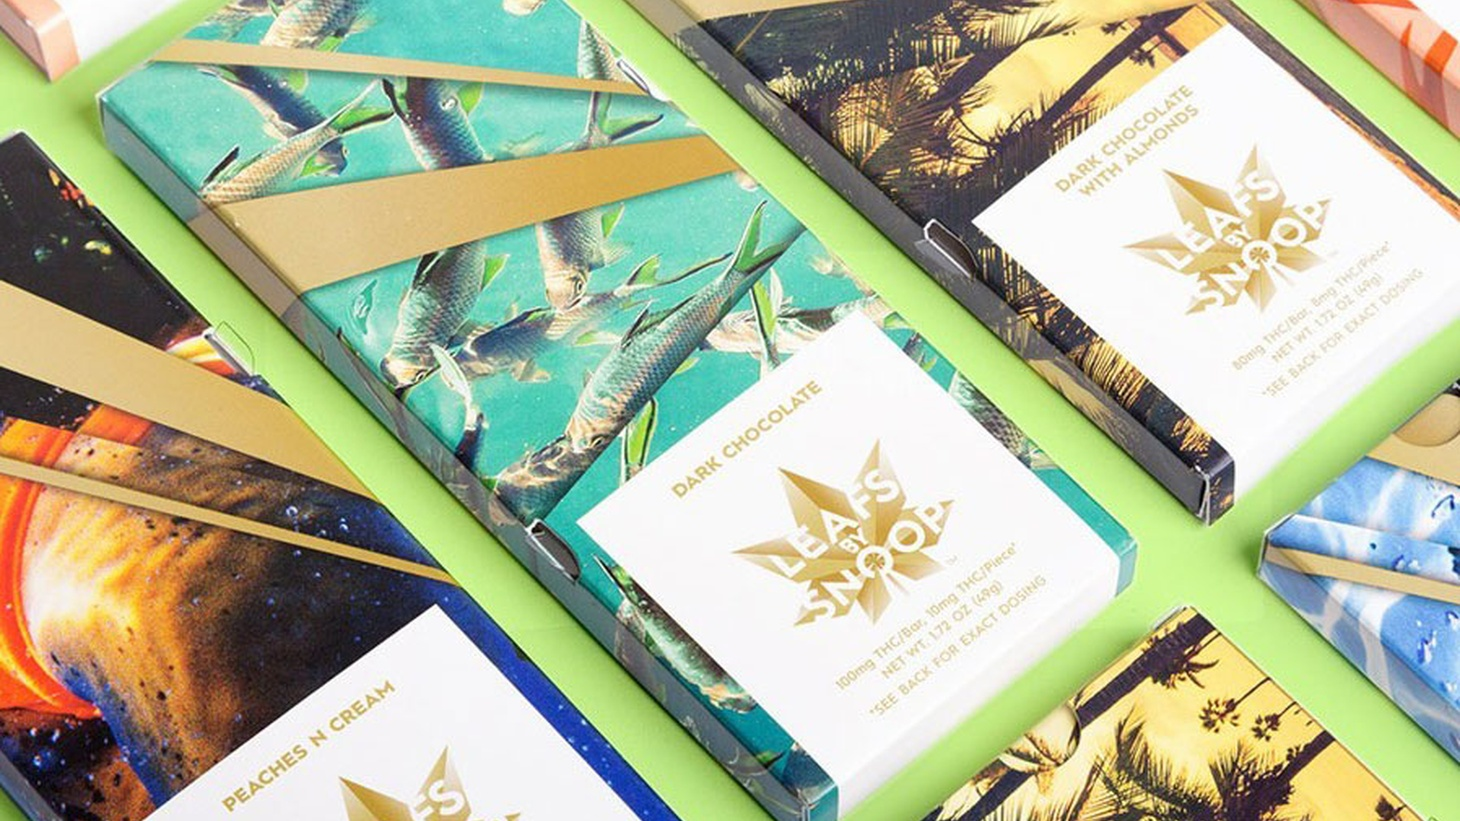 Voters in California will decide next week whether to legalize recreational marijuana. Meanwhile, the fast-growing cannabis industry is turning to high-end product design and sleek new dispensaries to attract new customers and clean up its image.